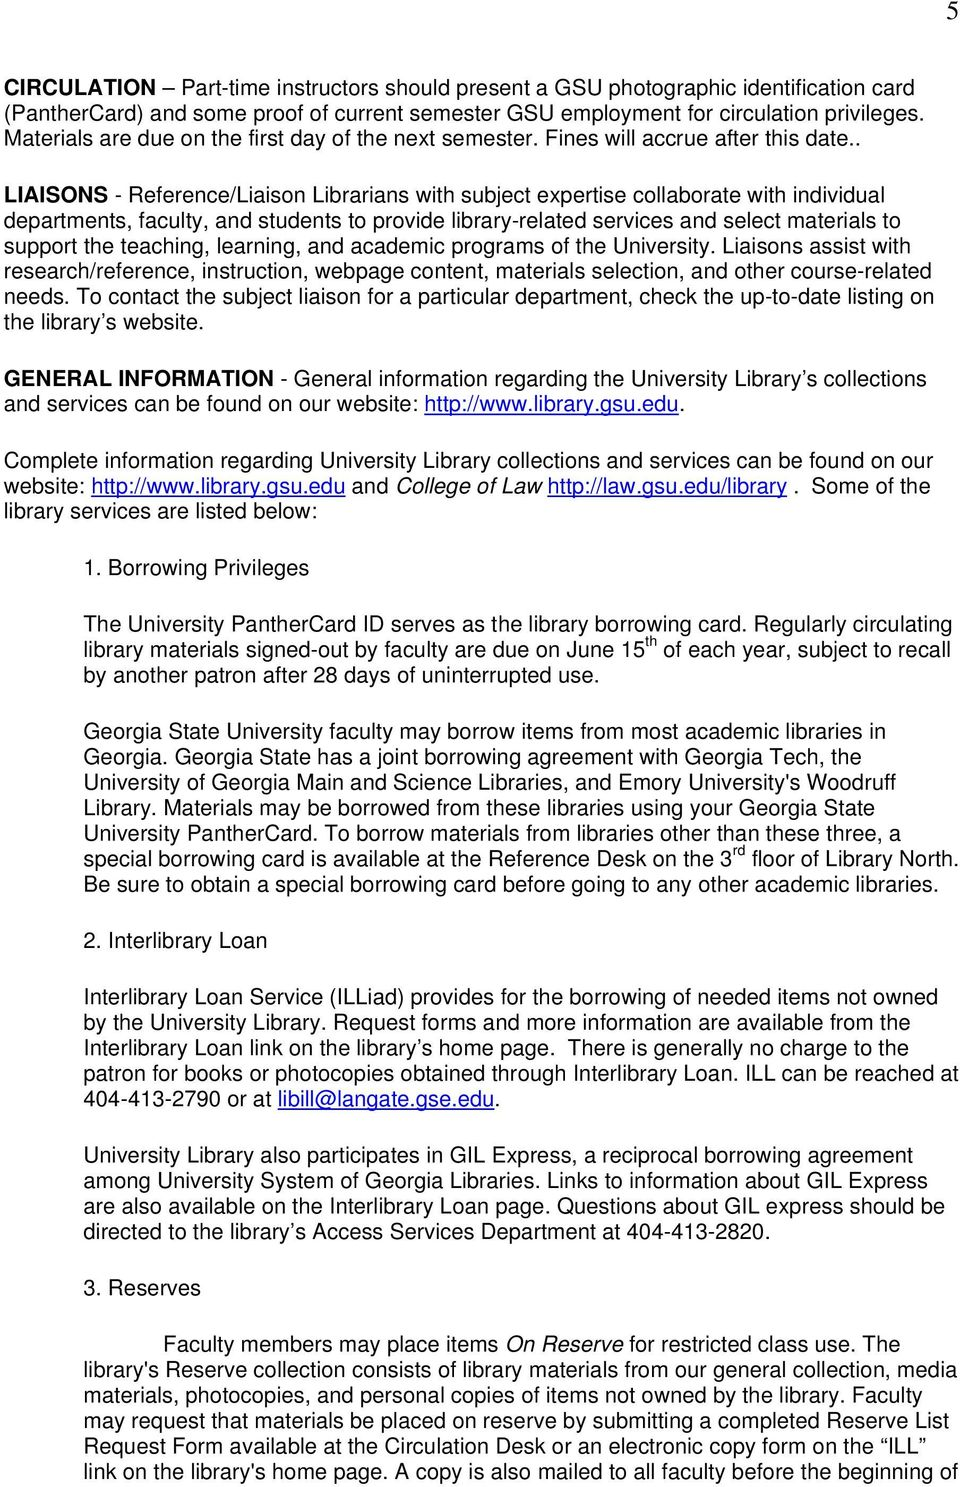 . LIAISONS - Reference/Liaison Librarians with subject expertise collaborate with individual departments, faculty, and students to provide library-related services and select materials to support the